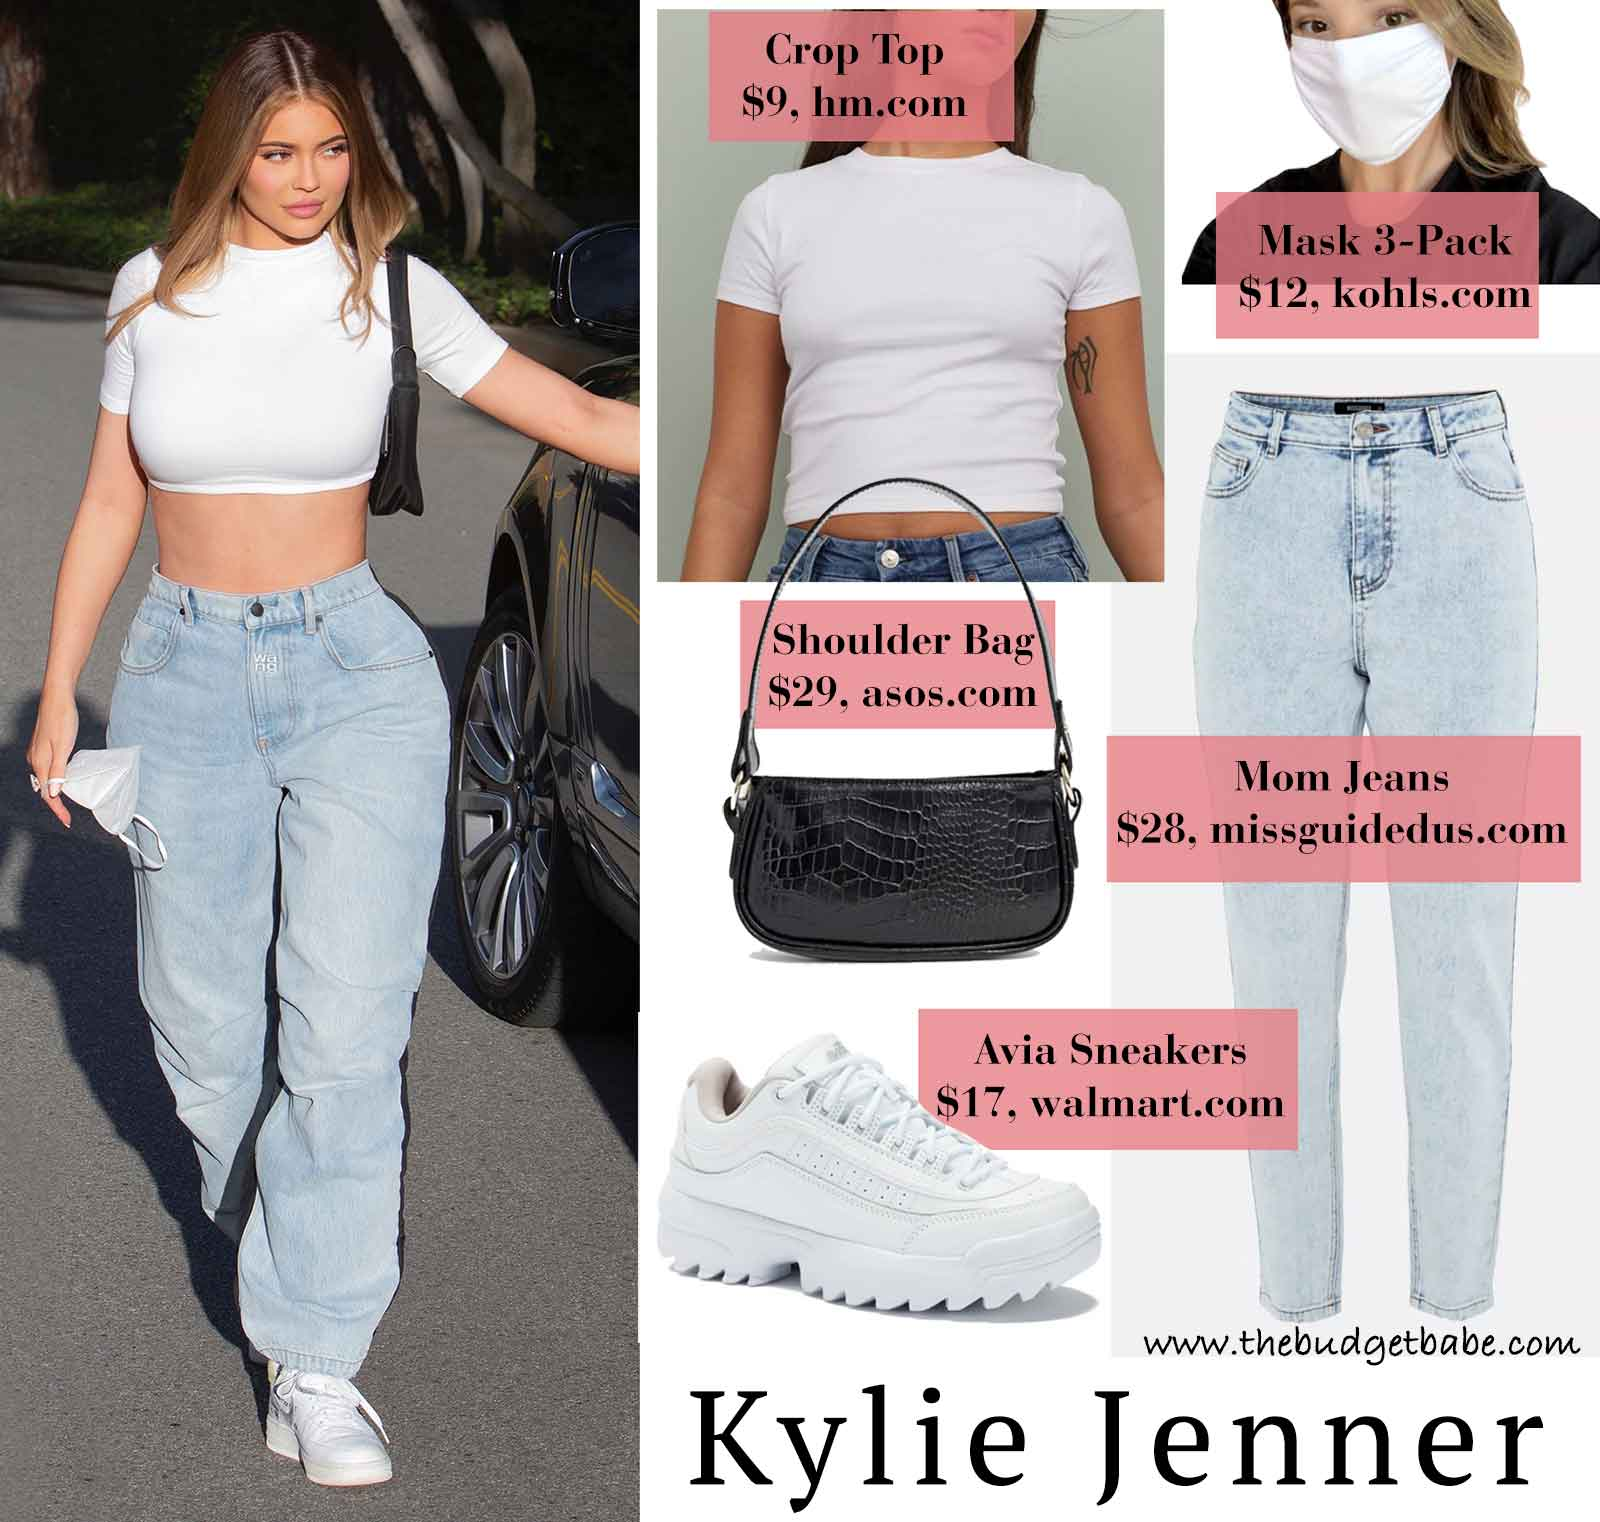 Kylie Jenner's mom jeans and Nike Air Force 1 look for less